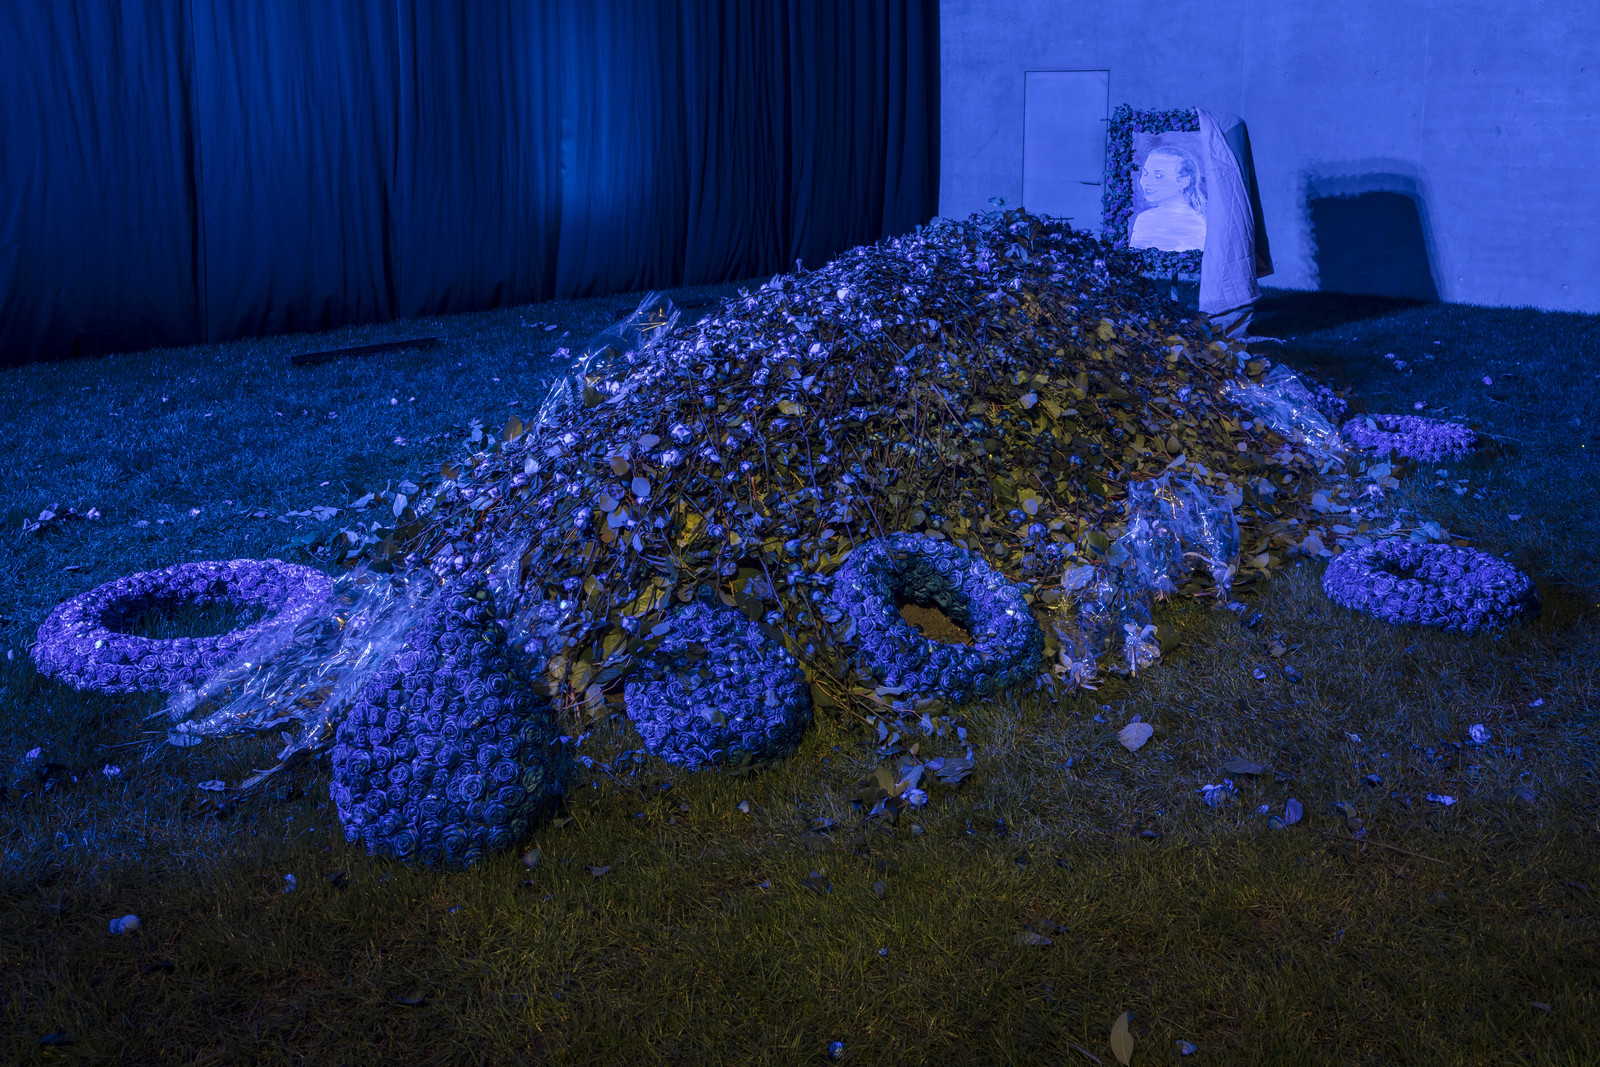 Memorial, 2020, installation view.